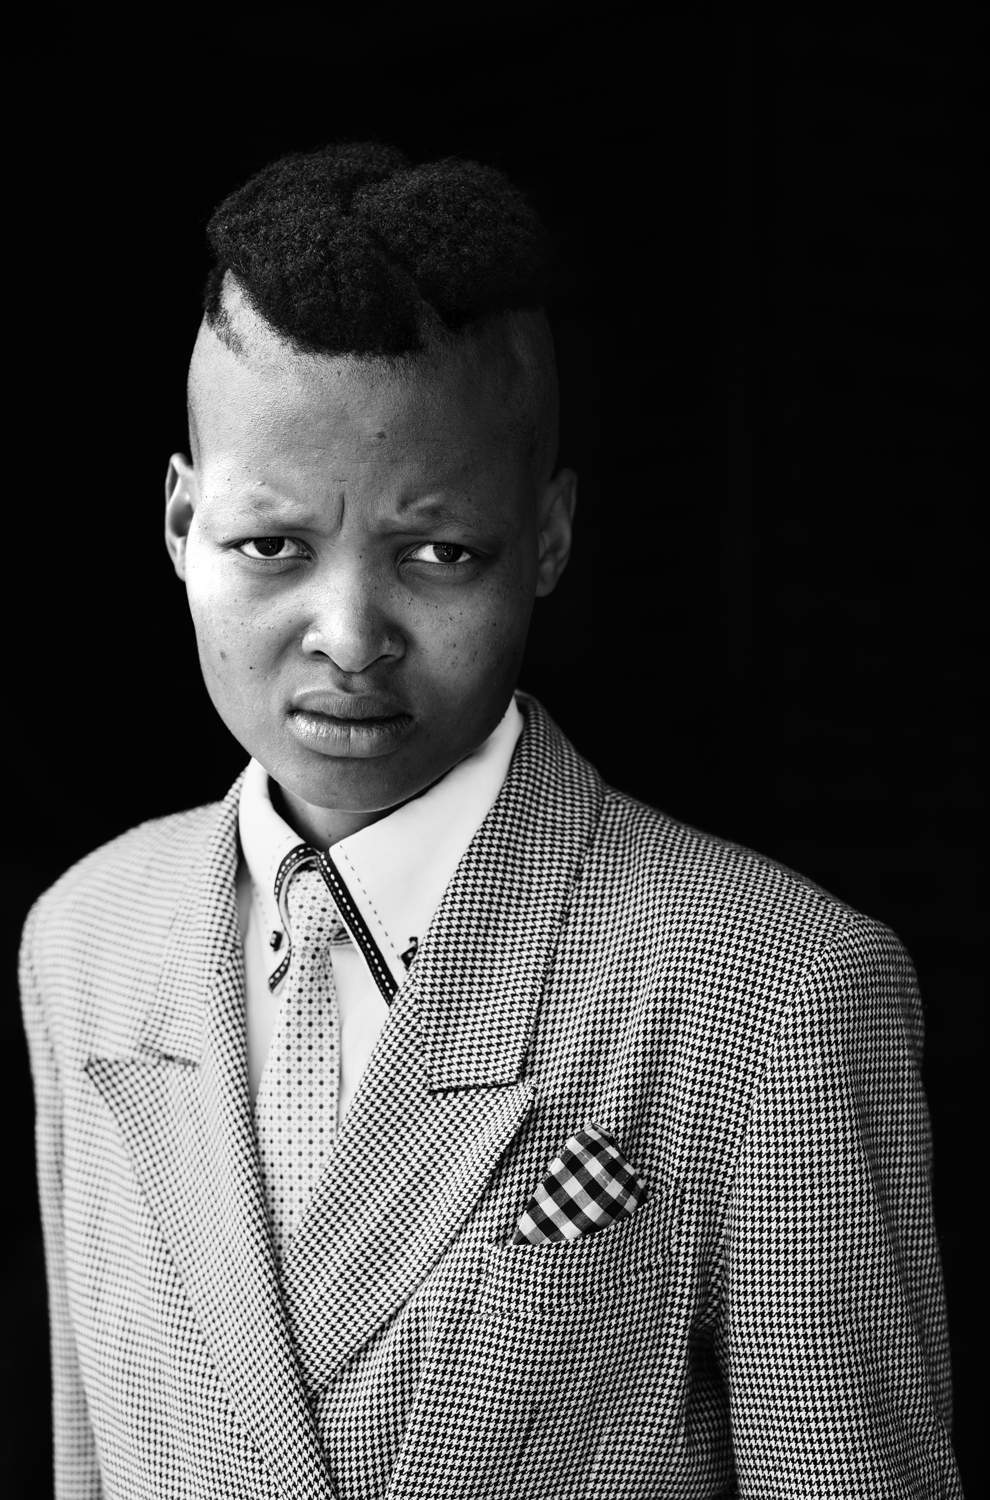 Vuyelwa Vuvu Makubetse, Daveyton, Johannesburg , 2013 for the series  Faces and Phases